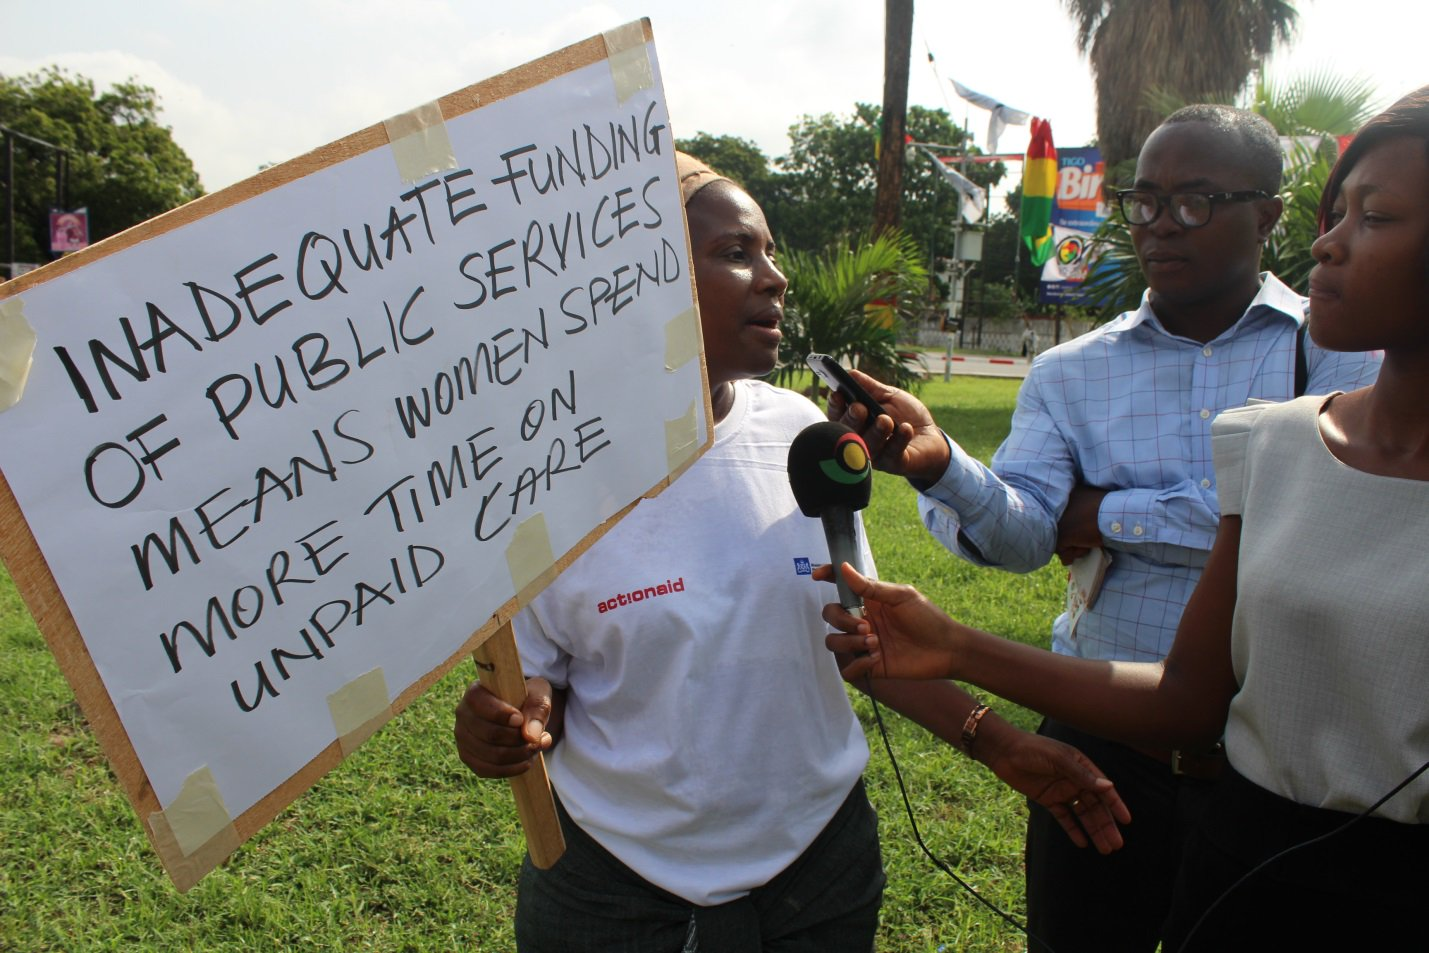 extracted from ActionAid Ghana twitter